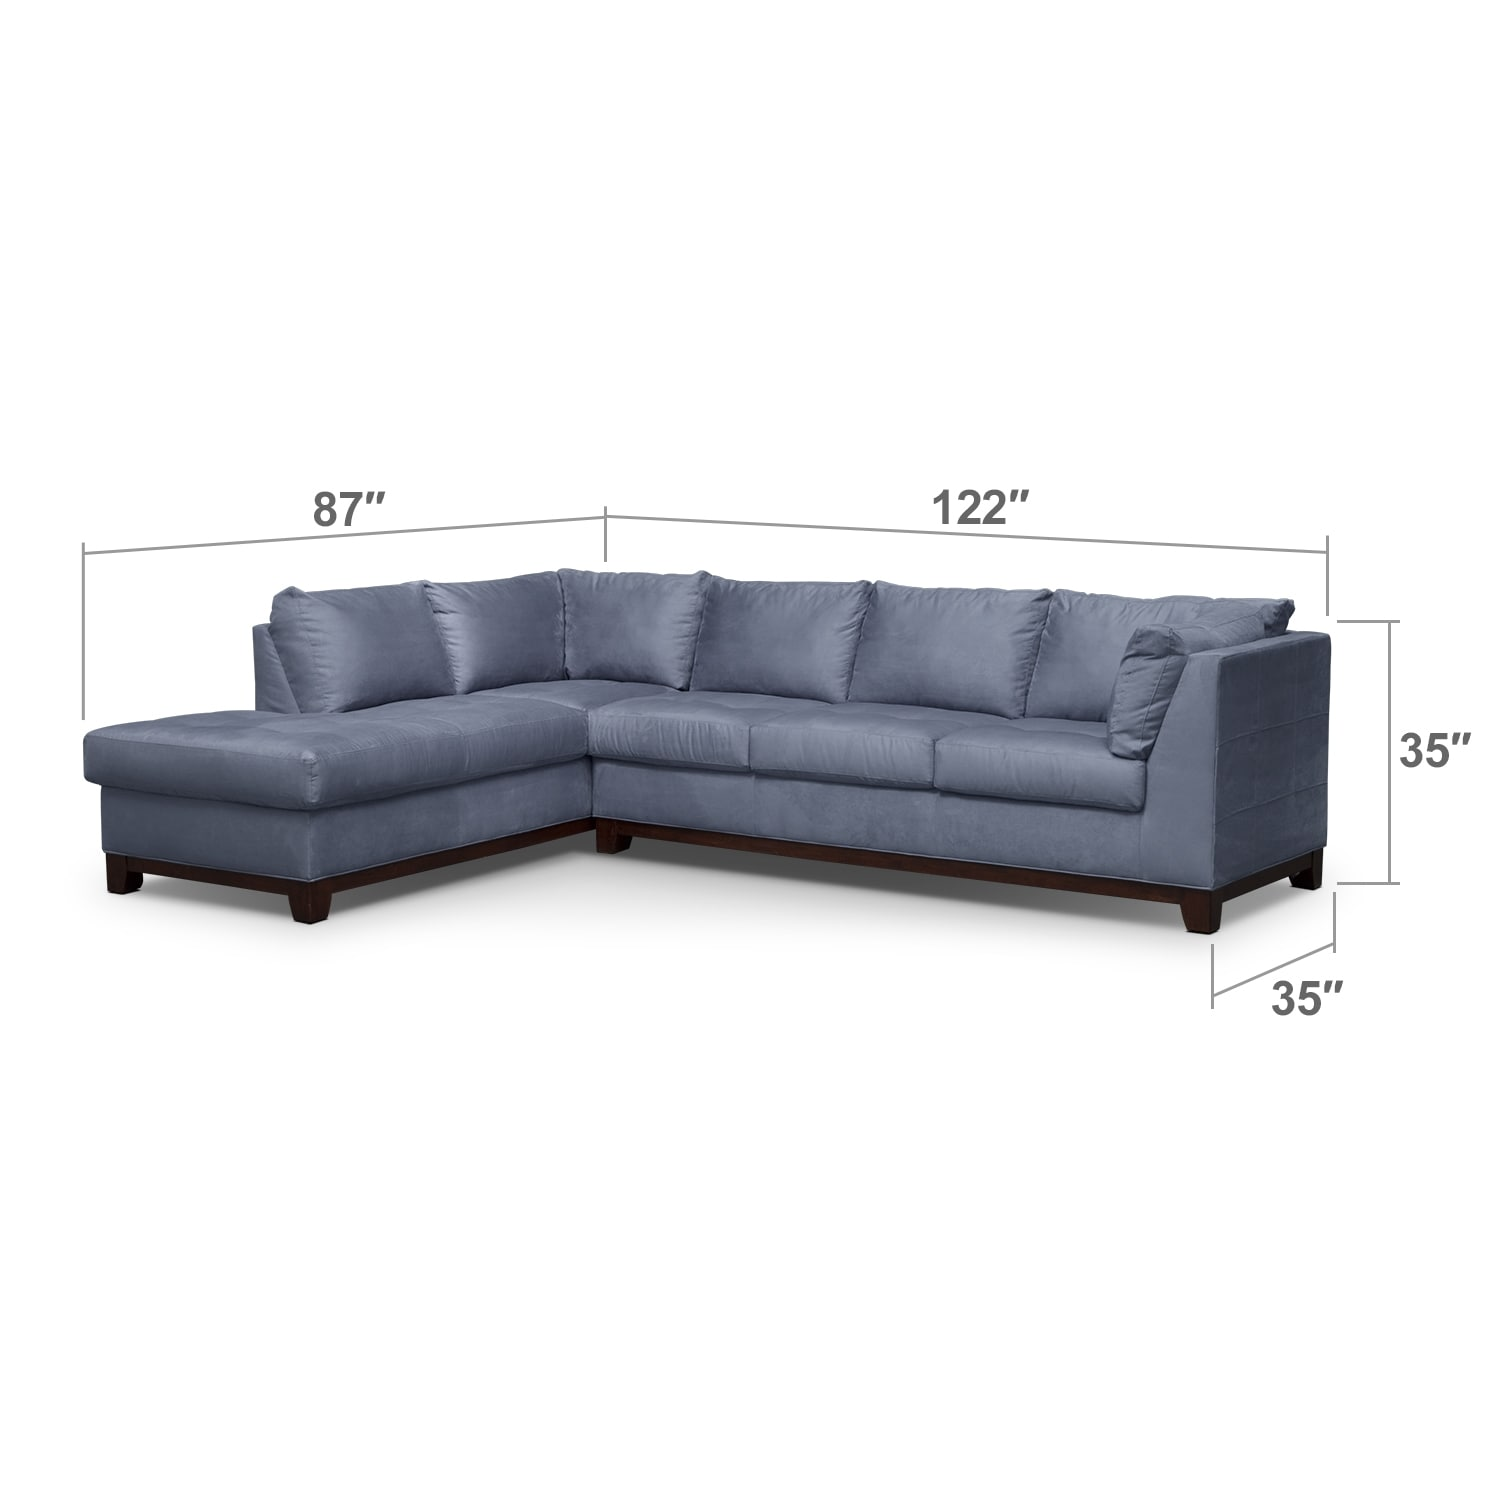 Living Room Furniture - Soho IV 2 Pc. Sectional (Reverse)